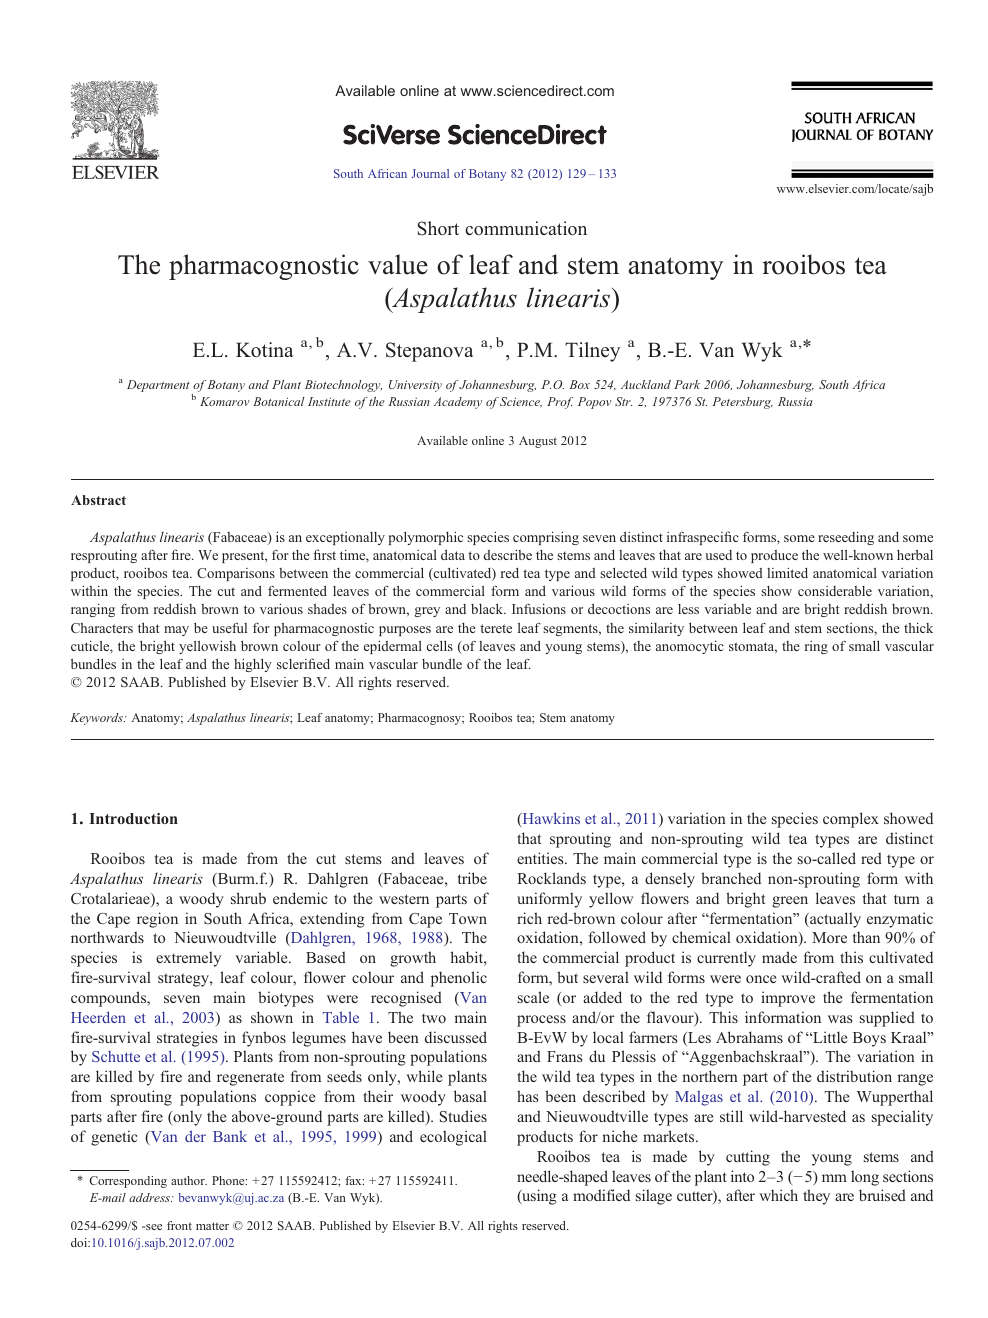 The Pharmacognostic Value Of Leaf And Stem Anatomy In Rooibos Tea